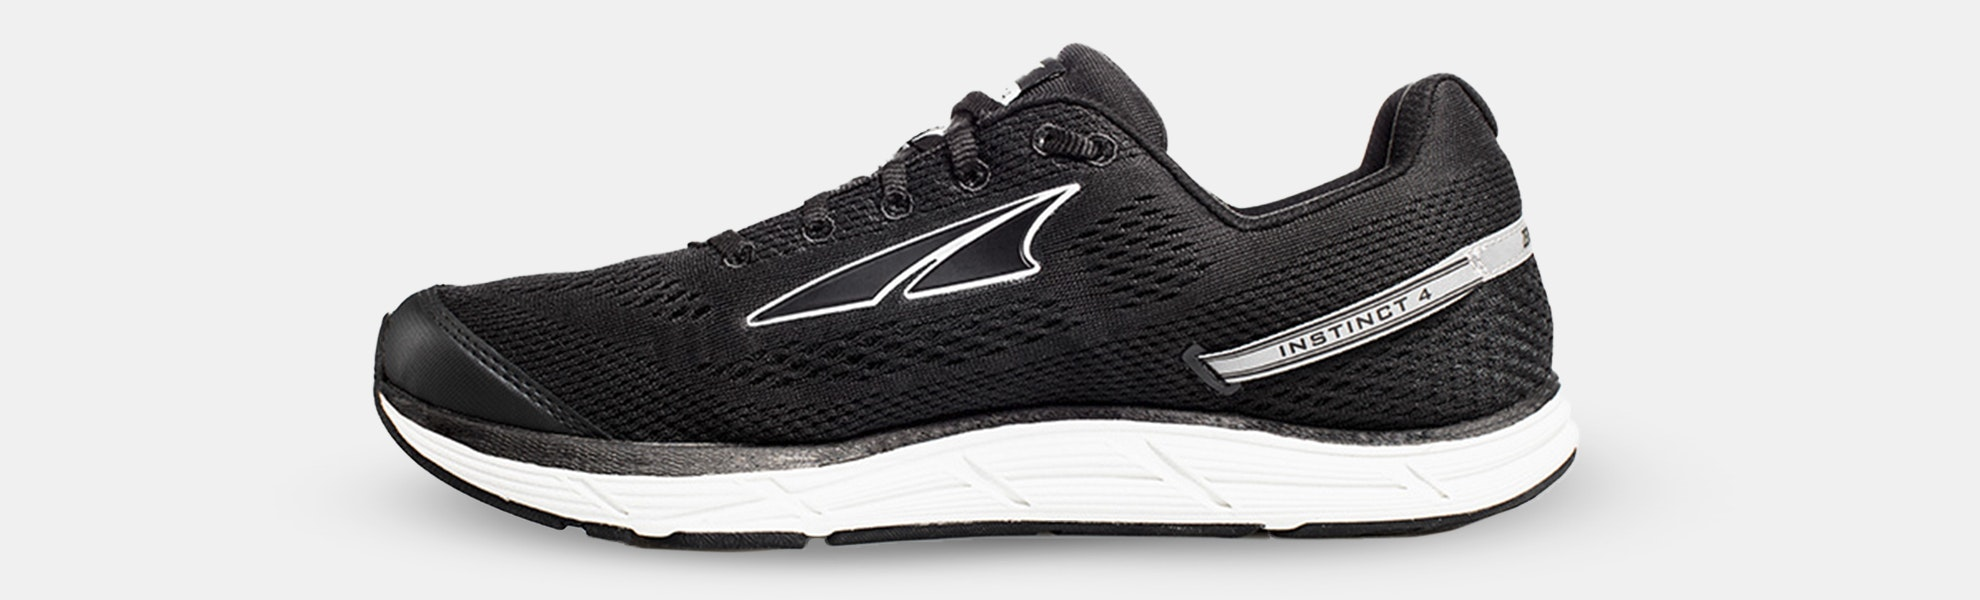 Altra Instinct & Intuition 4.0 Running Shoes